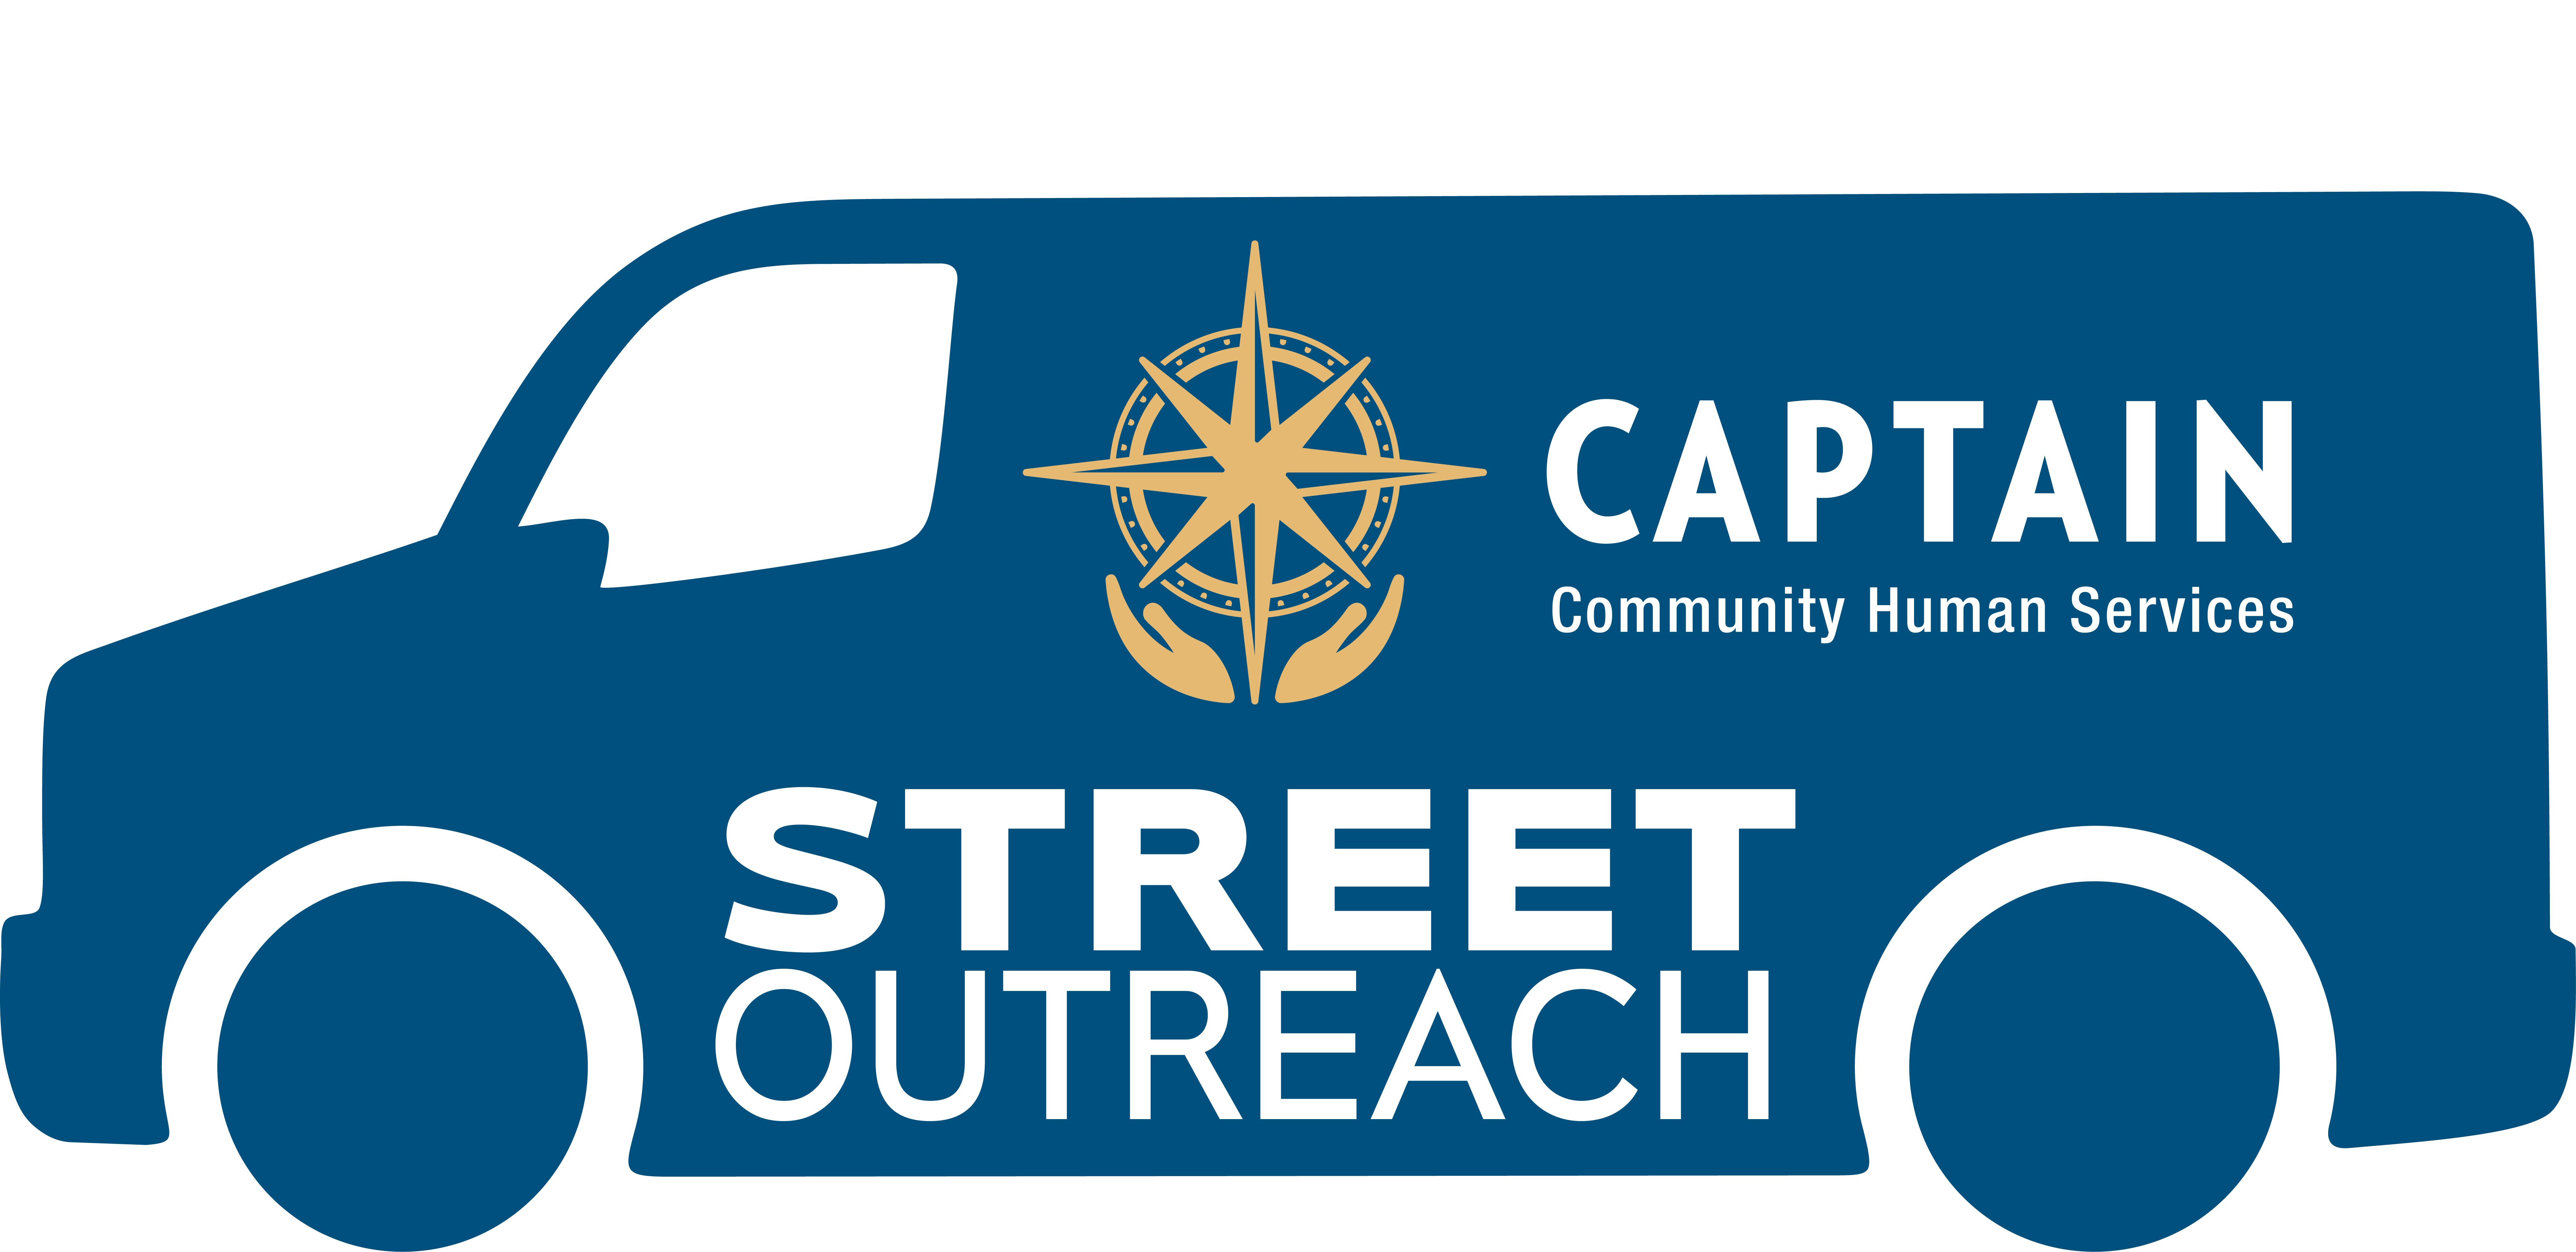 CAPTAIN CHS Announces Expanded Homeless Services for Youth and Adults in Fulton and Montgomery Counties